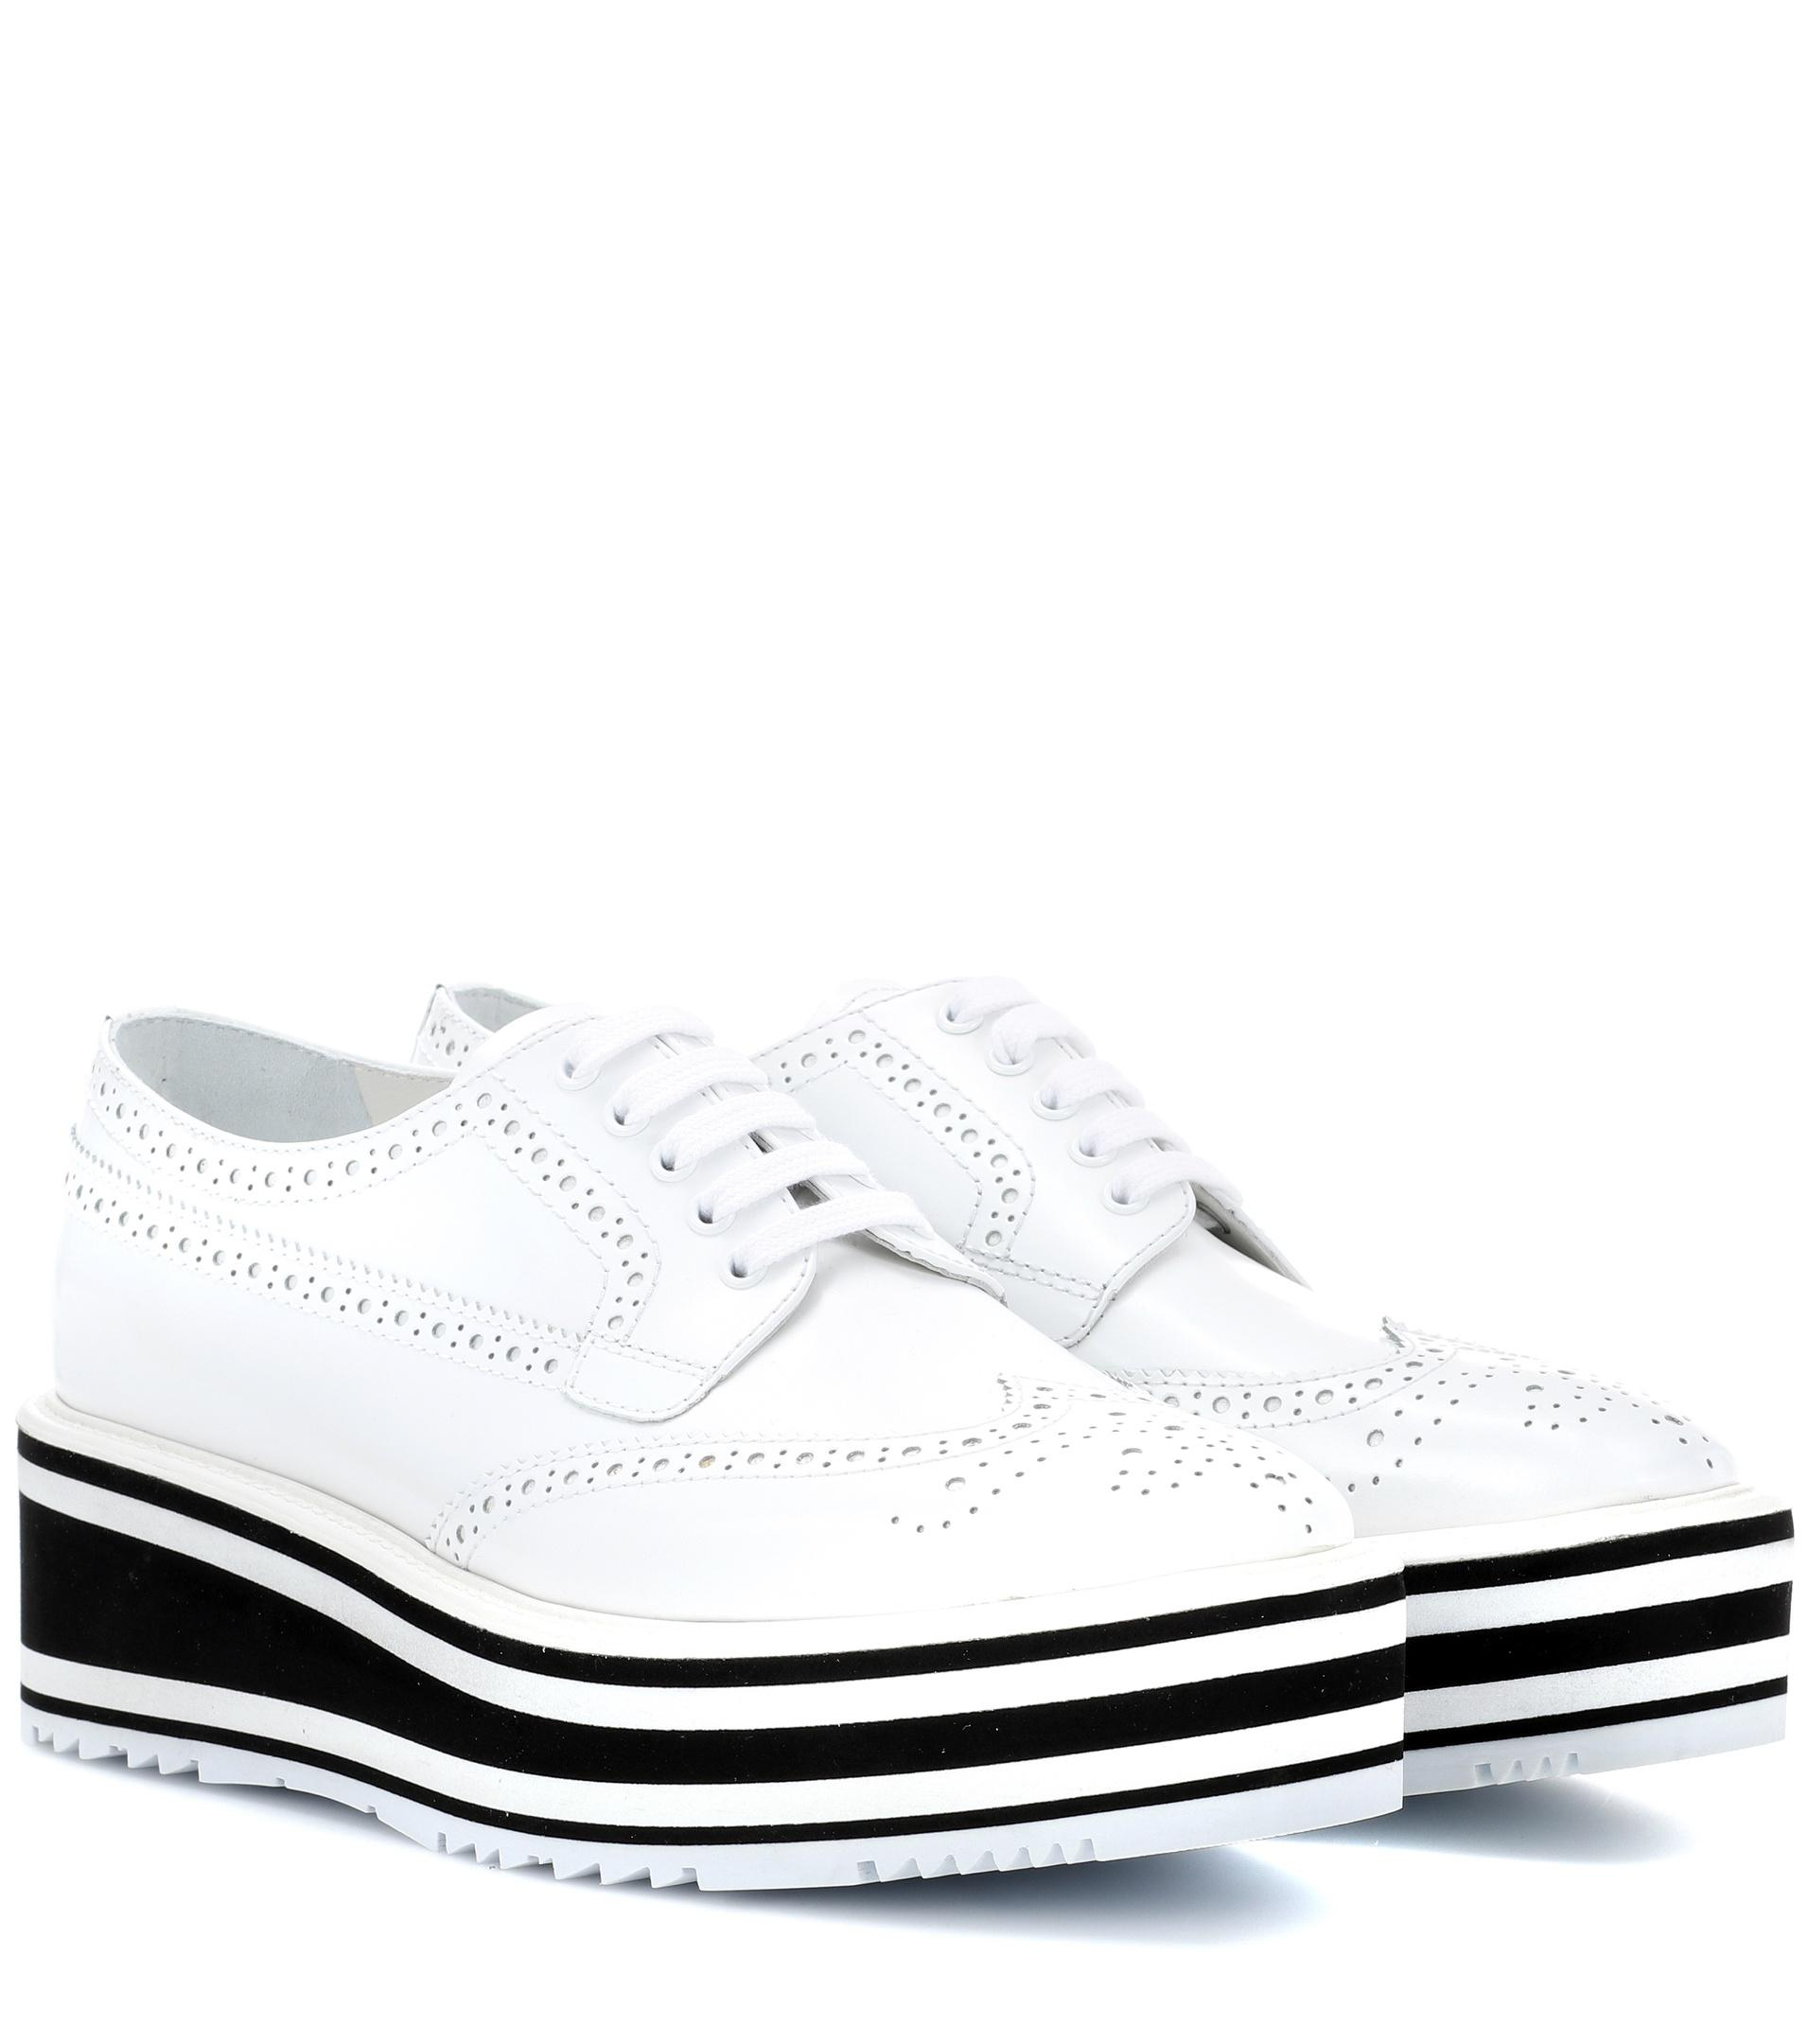 c6abb4265bb1 Prada Wingtip Leather Platform Brogues in White - Lyst